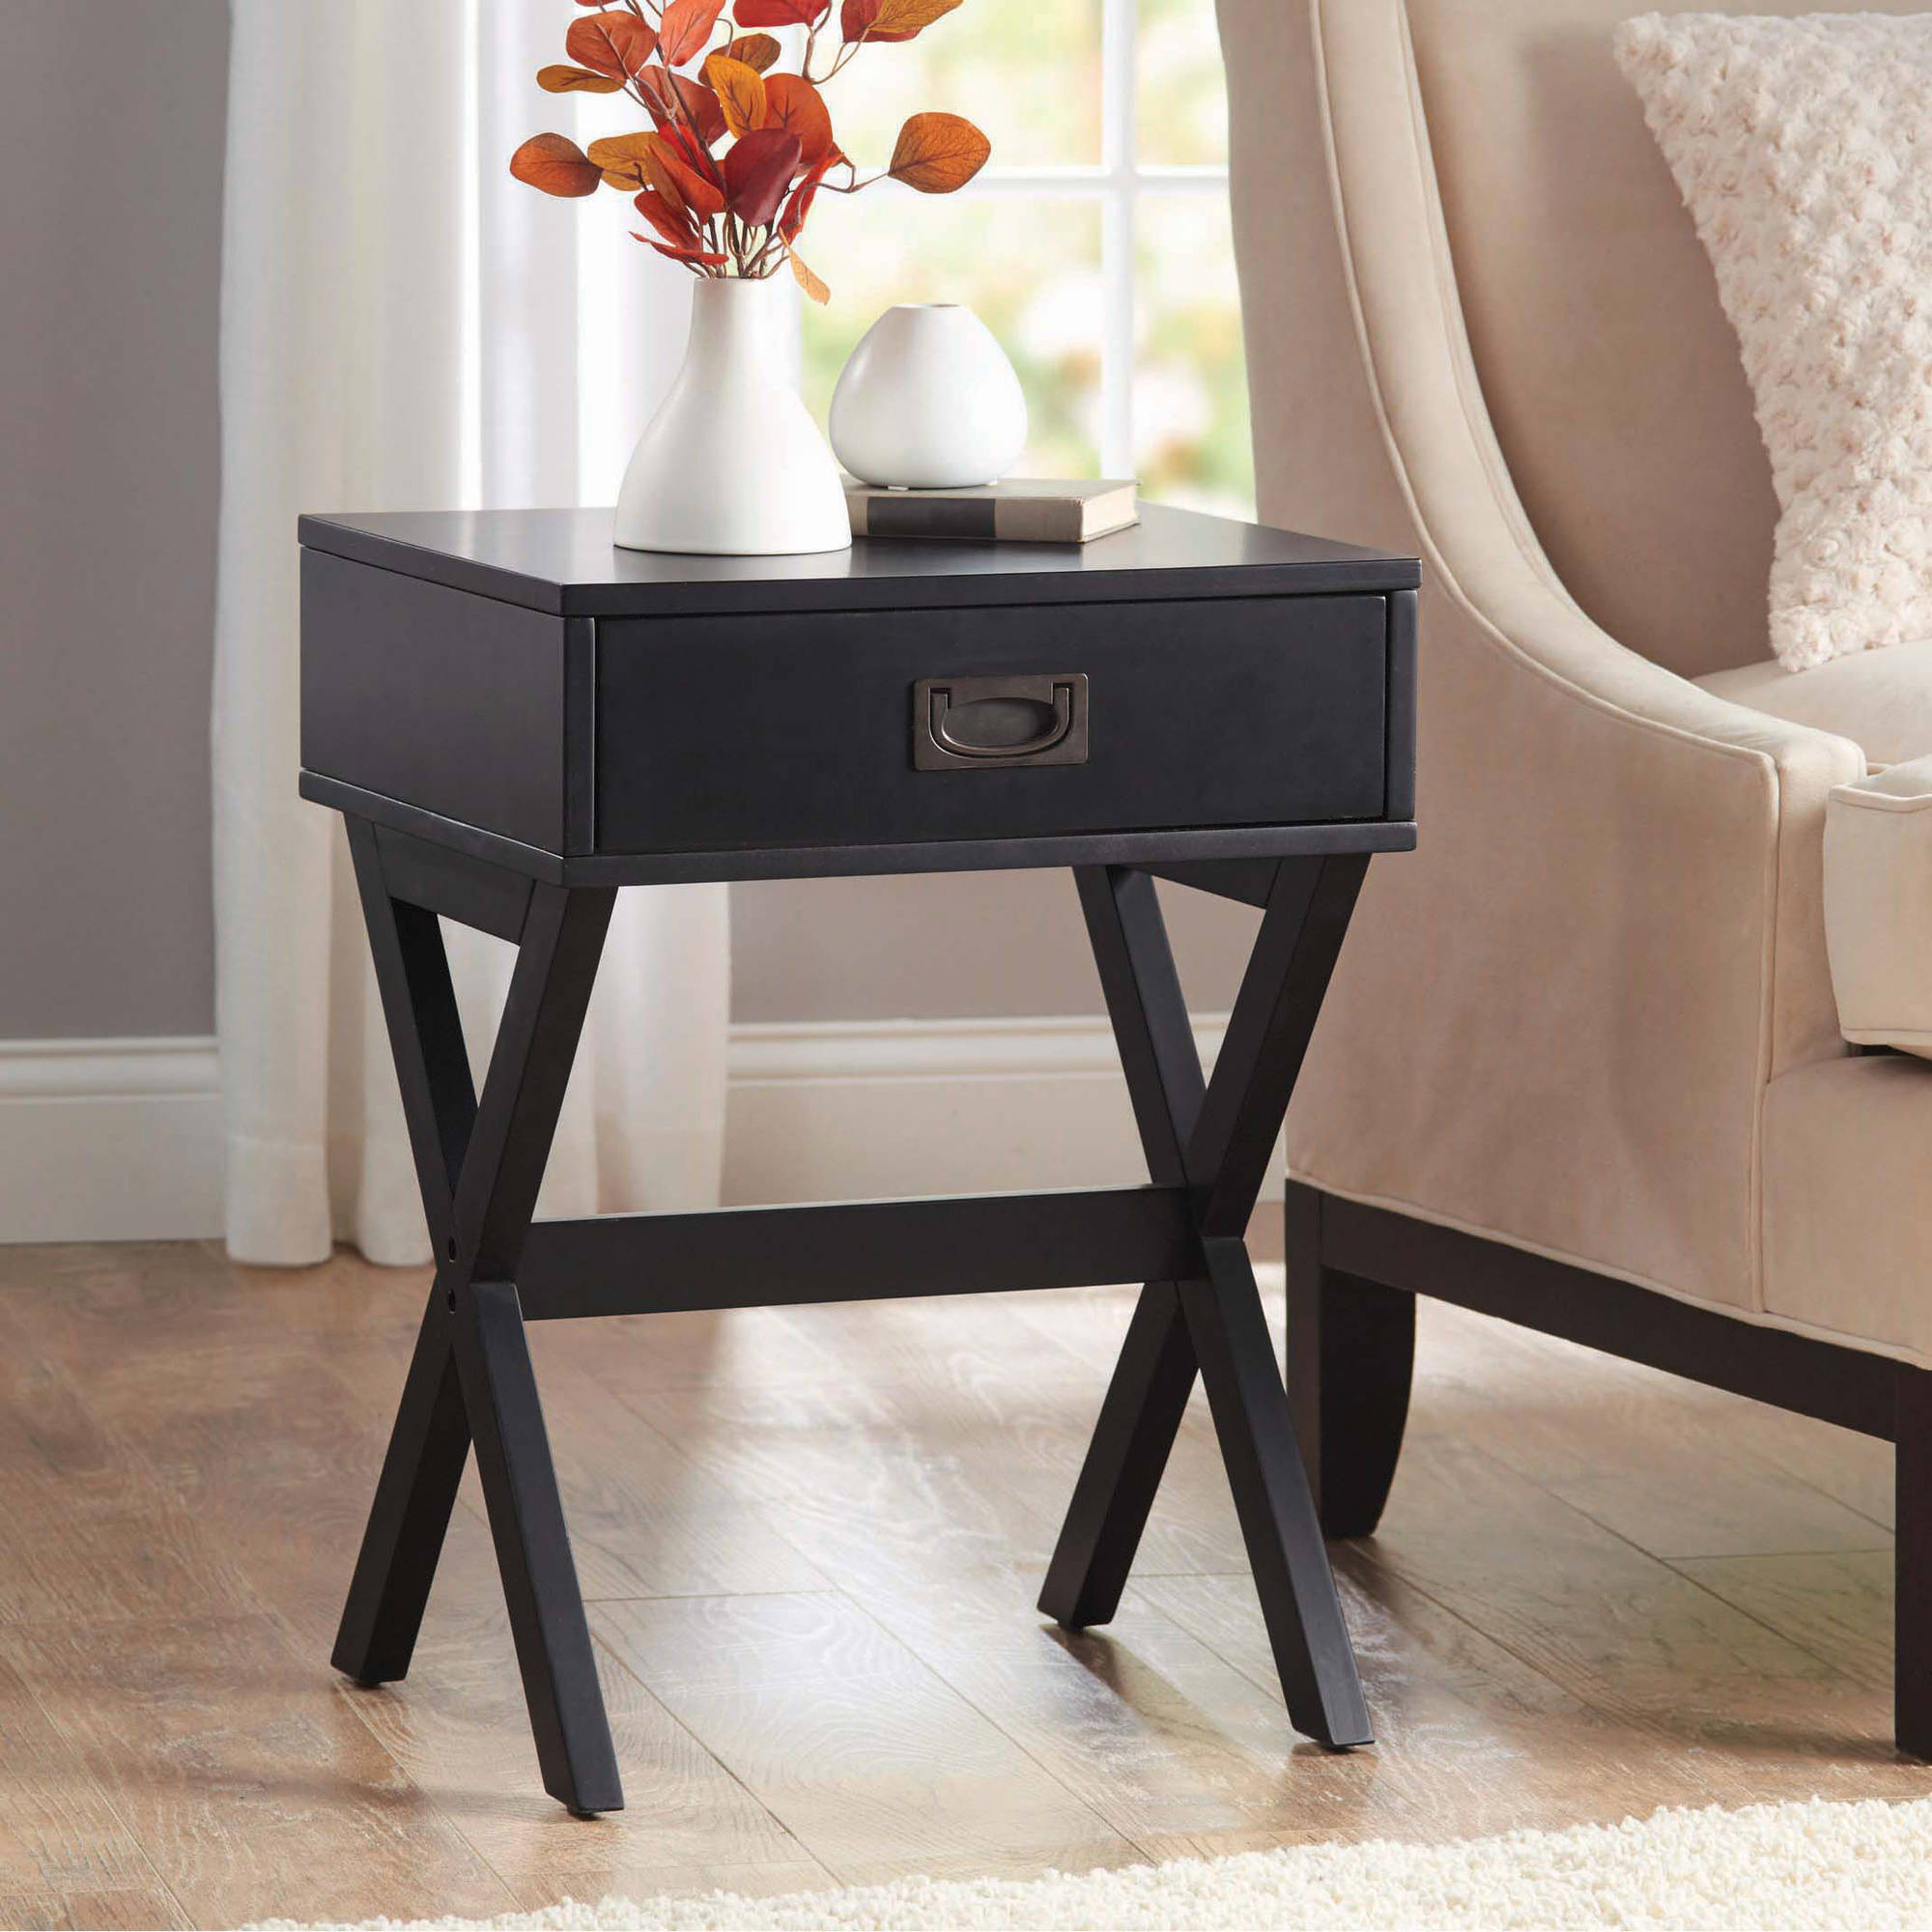 better homes gardens leg accent table with drawer multiple storage black room essentials colors factory direct furniture pier one porch small marble coffee high inch wide sofa